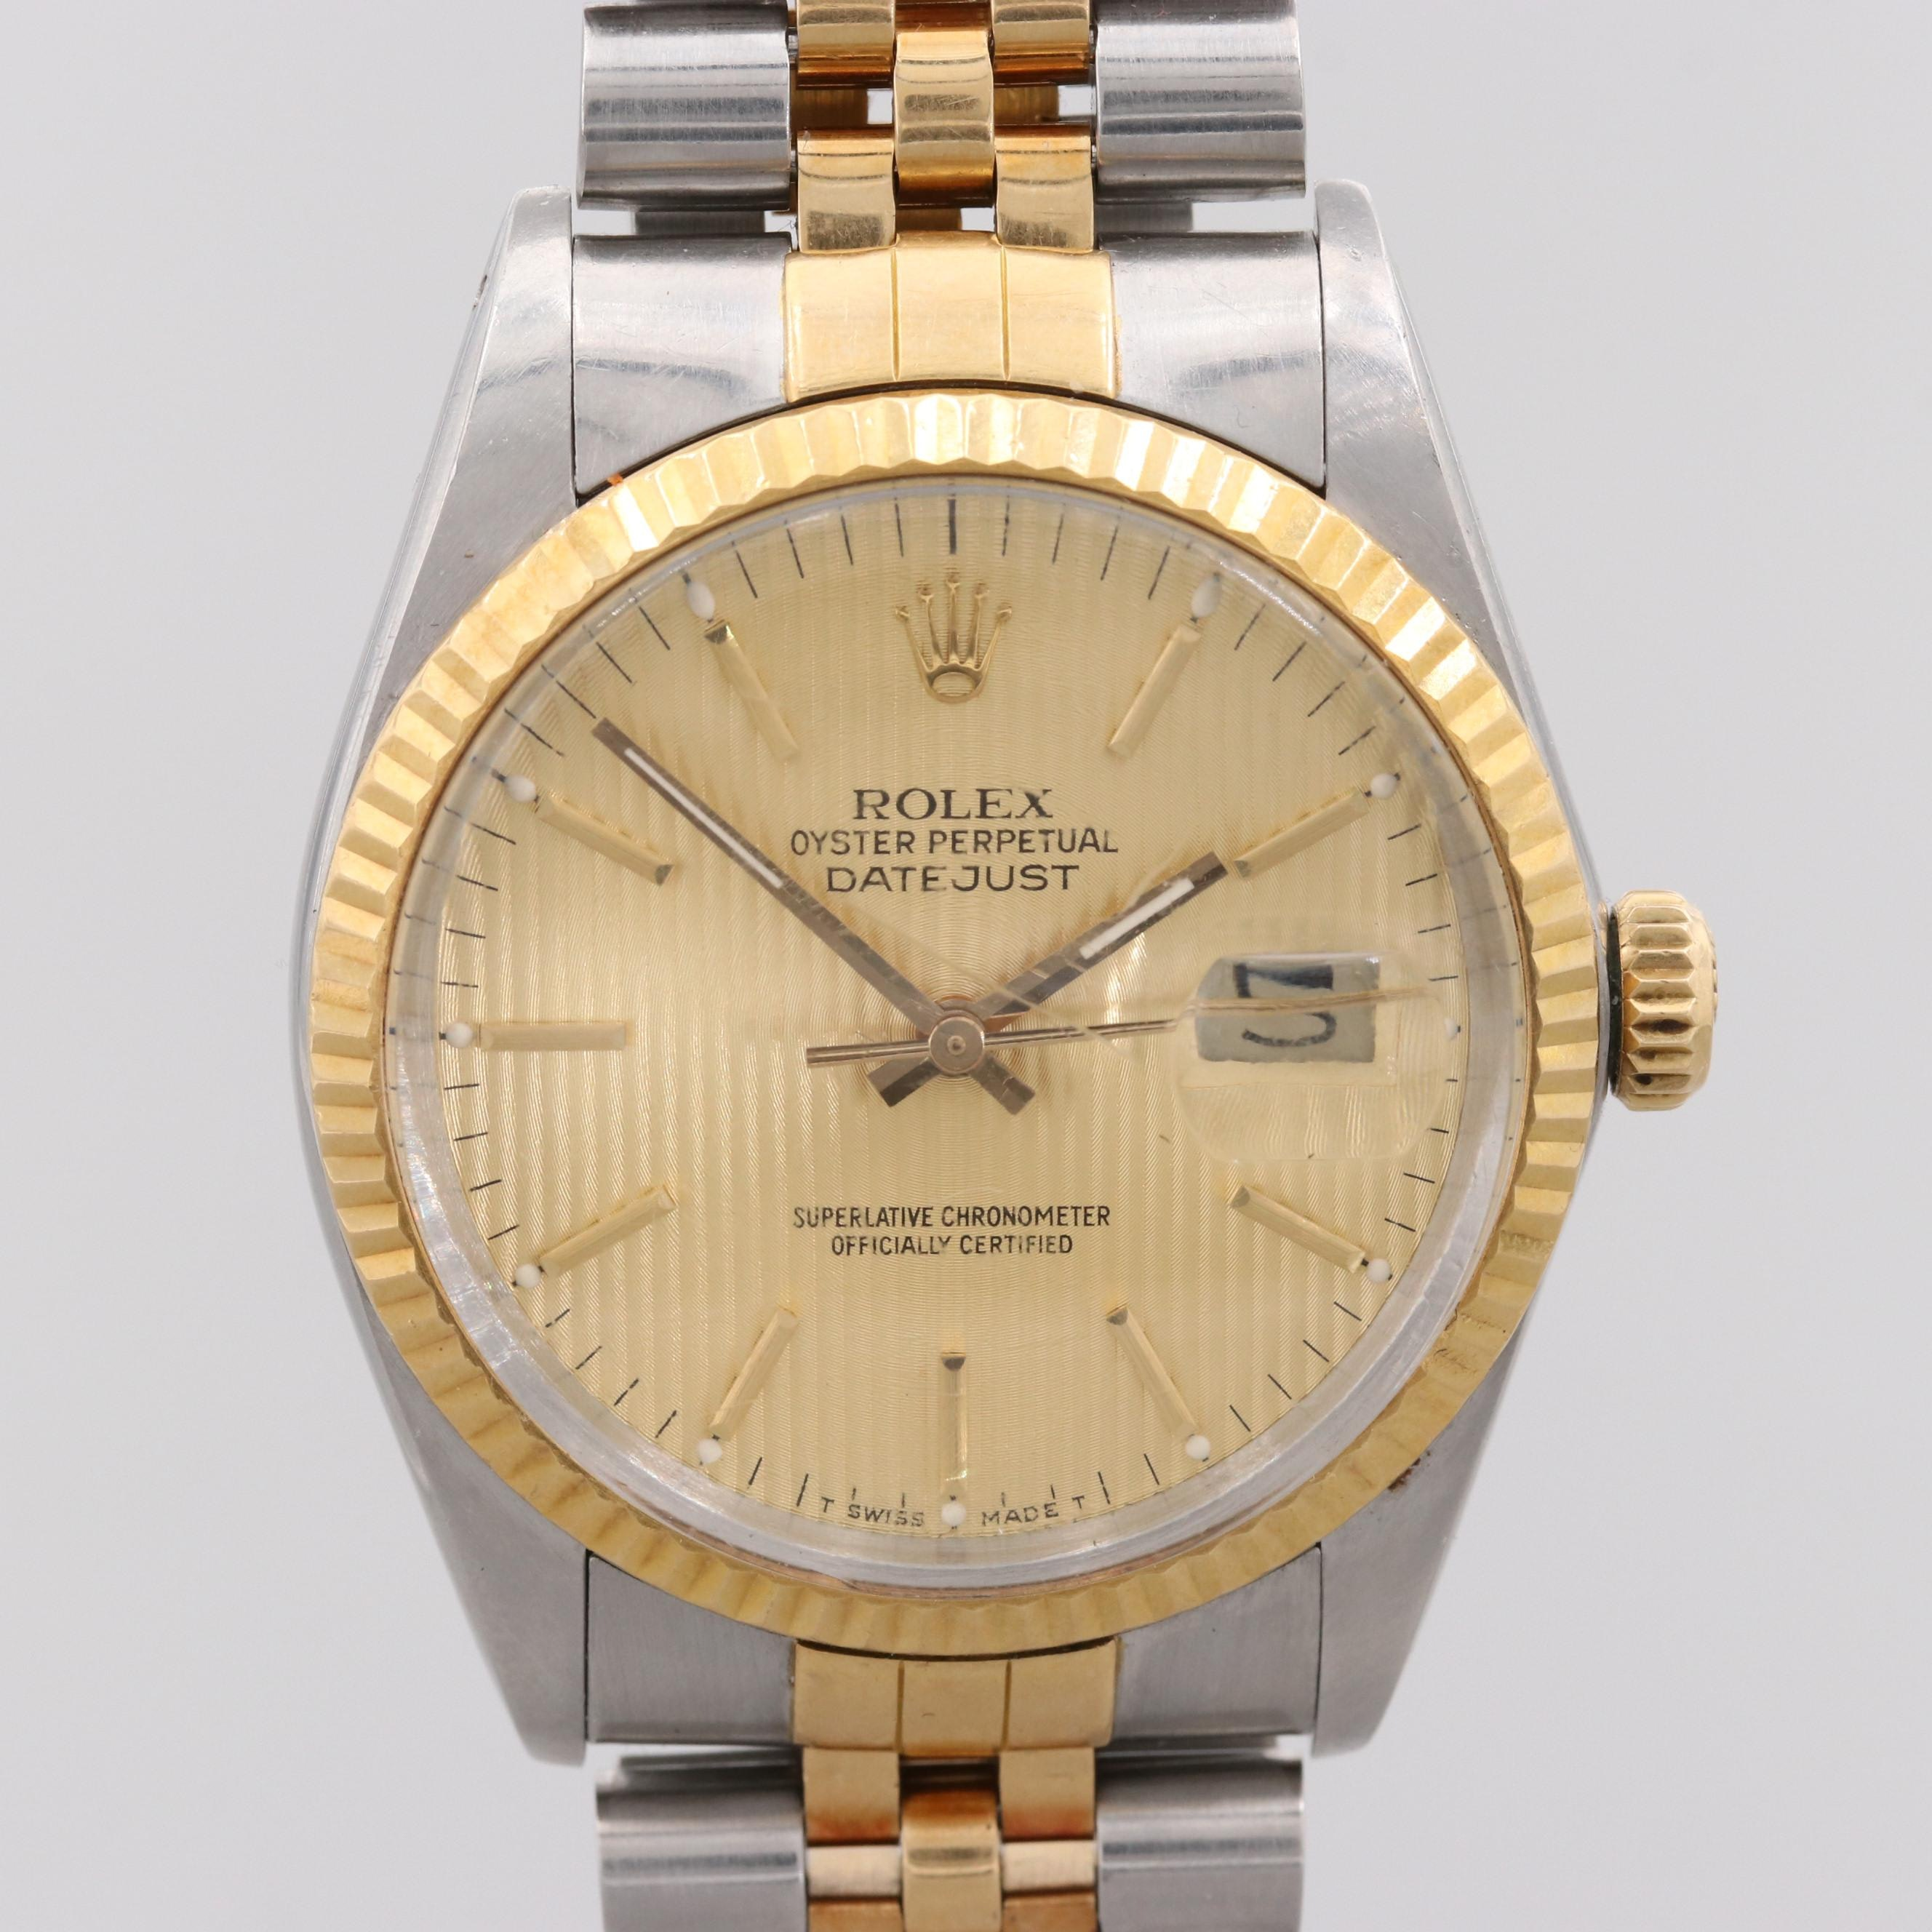 Rolex Datejust Stainless Steel and 18K Yellow Gold Wristwatch, 1987